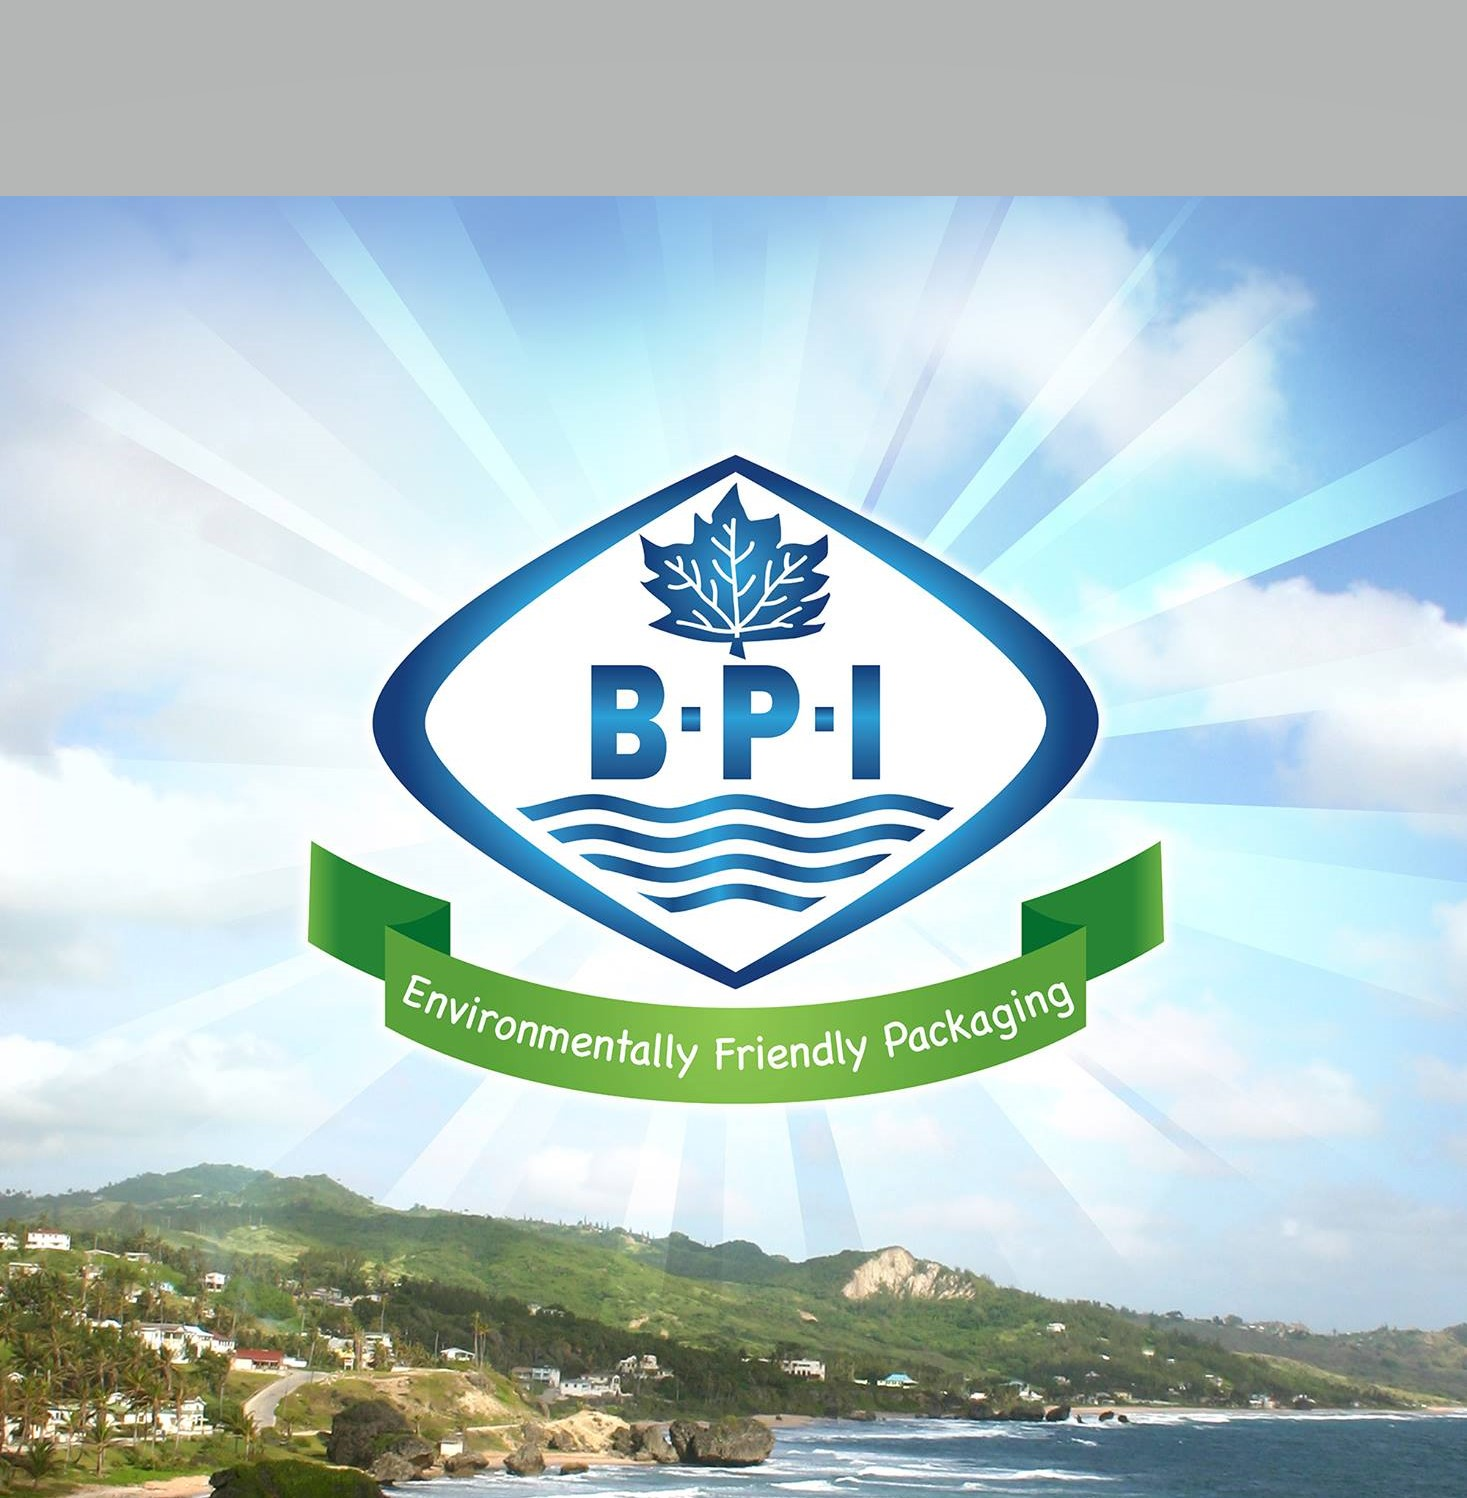 BPIL environmentally friendly poster